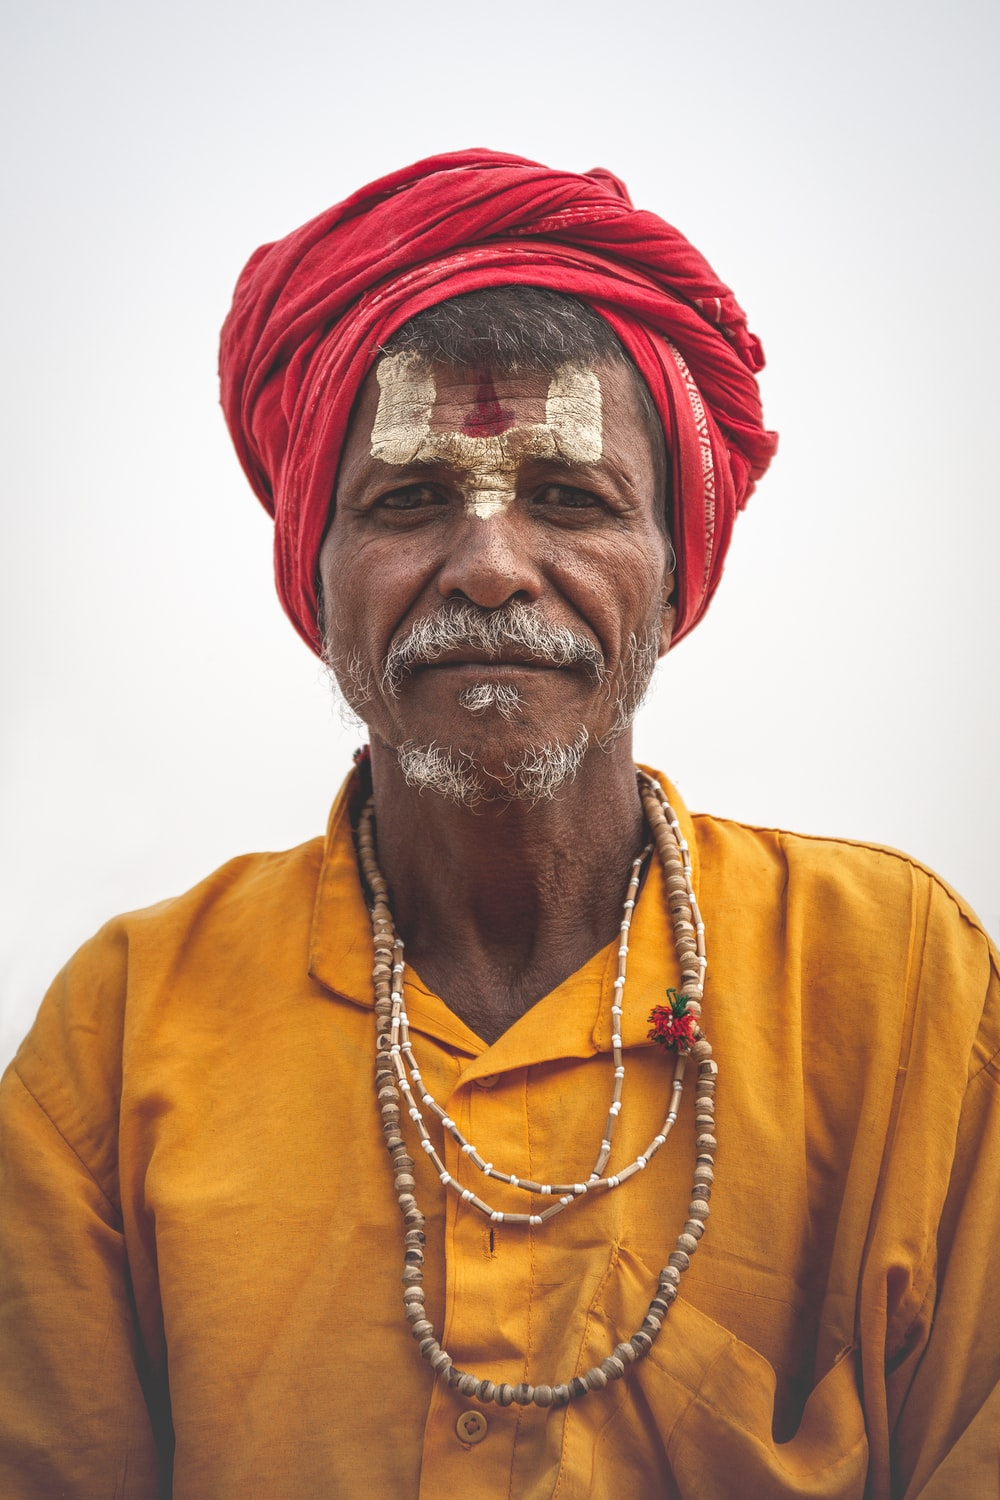 man wearing red headdress